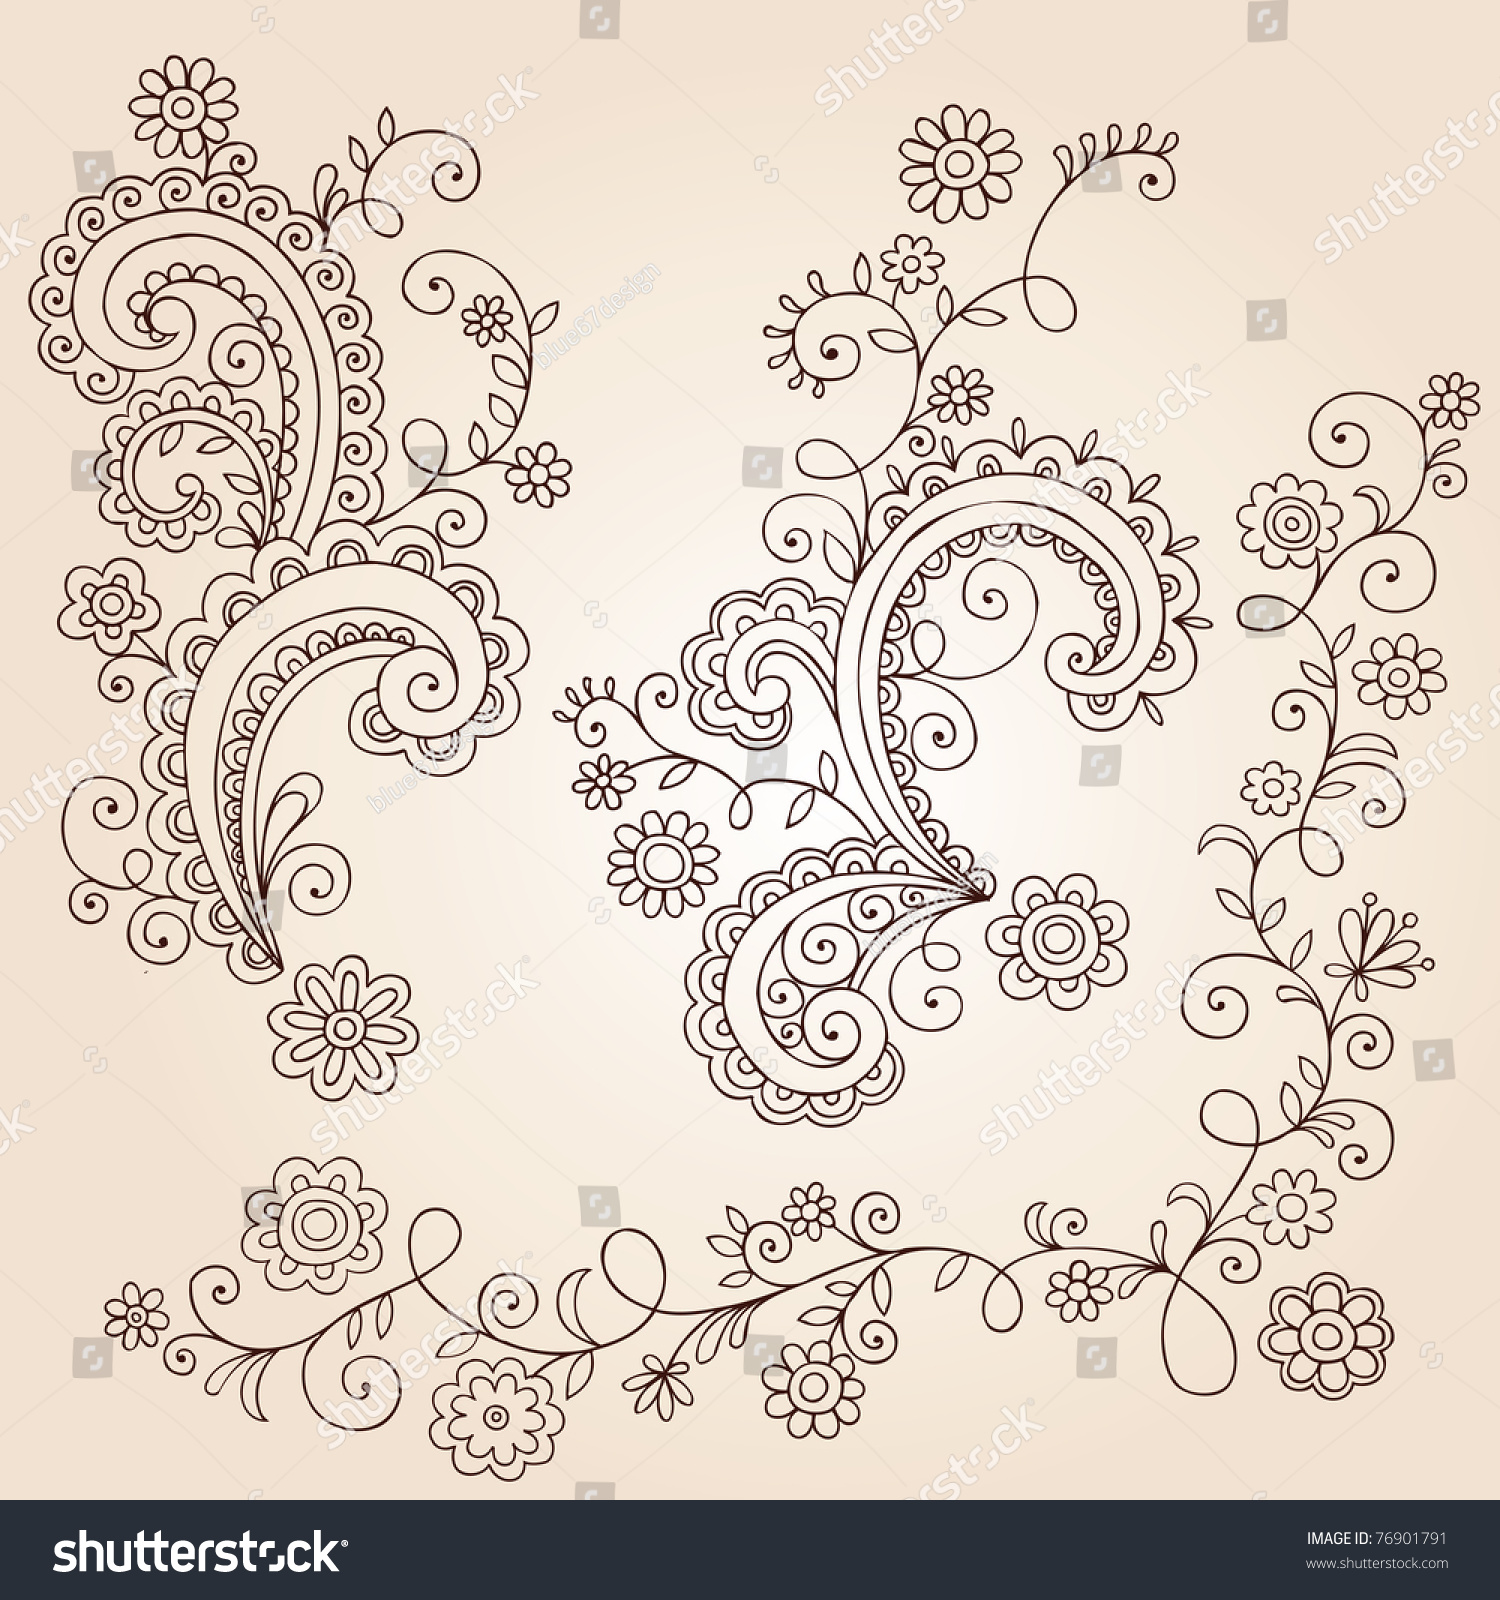 Handdrawn Abstract Henna Mehndi Abstract Flowers Stock Vector